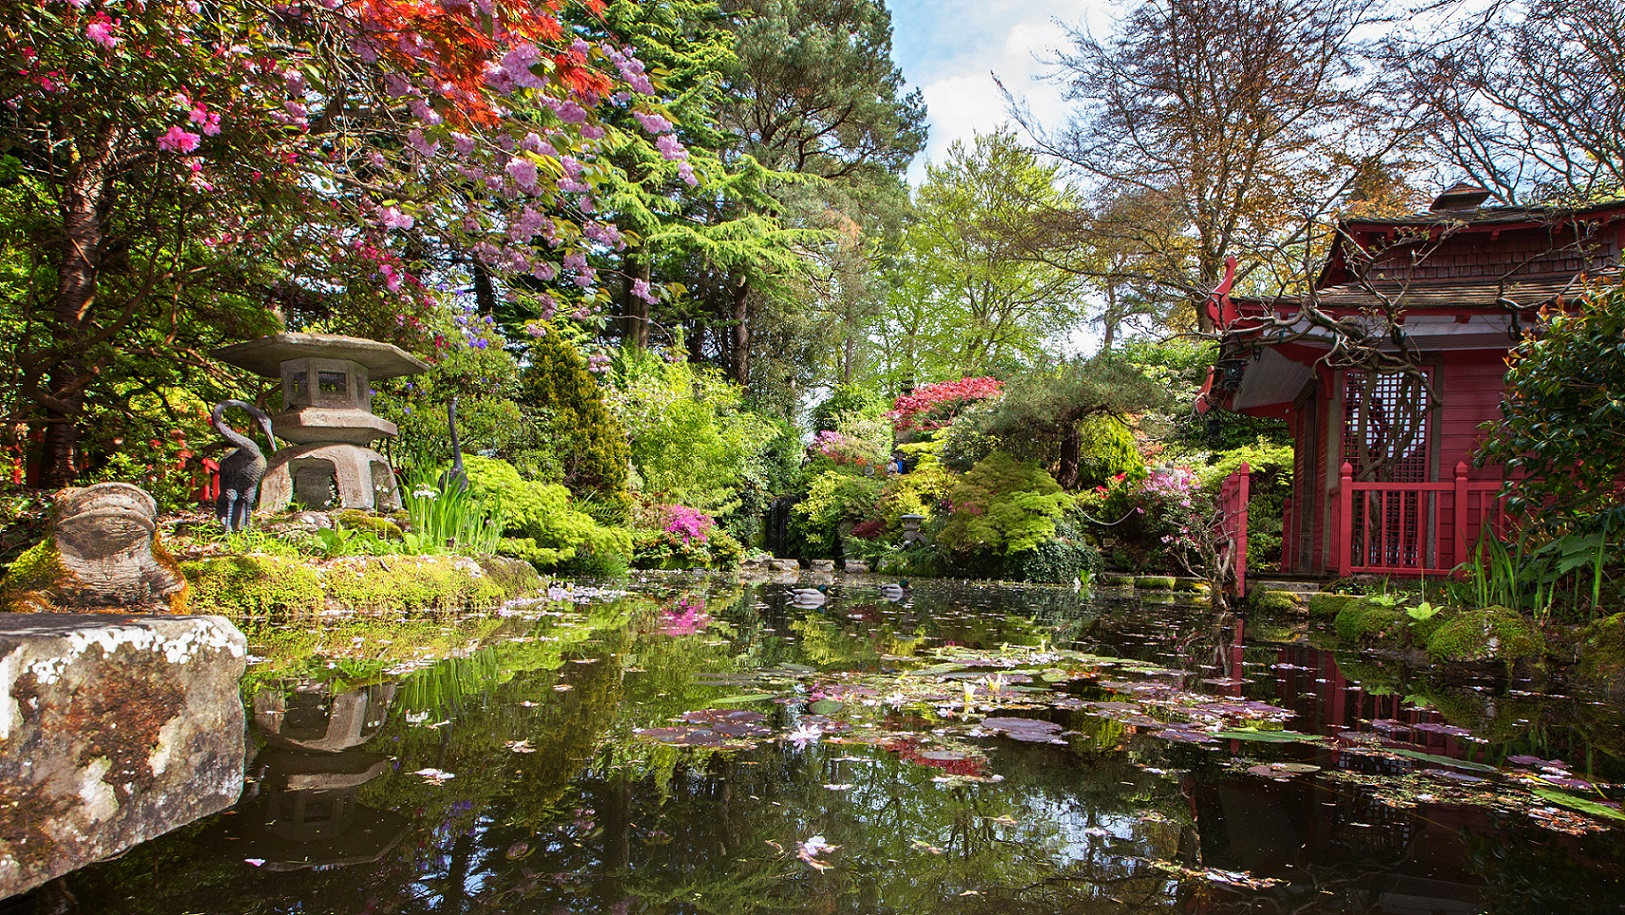 Compton acres in dorset celebrates japanese horticulture for Japanese garden bushes